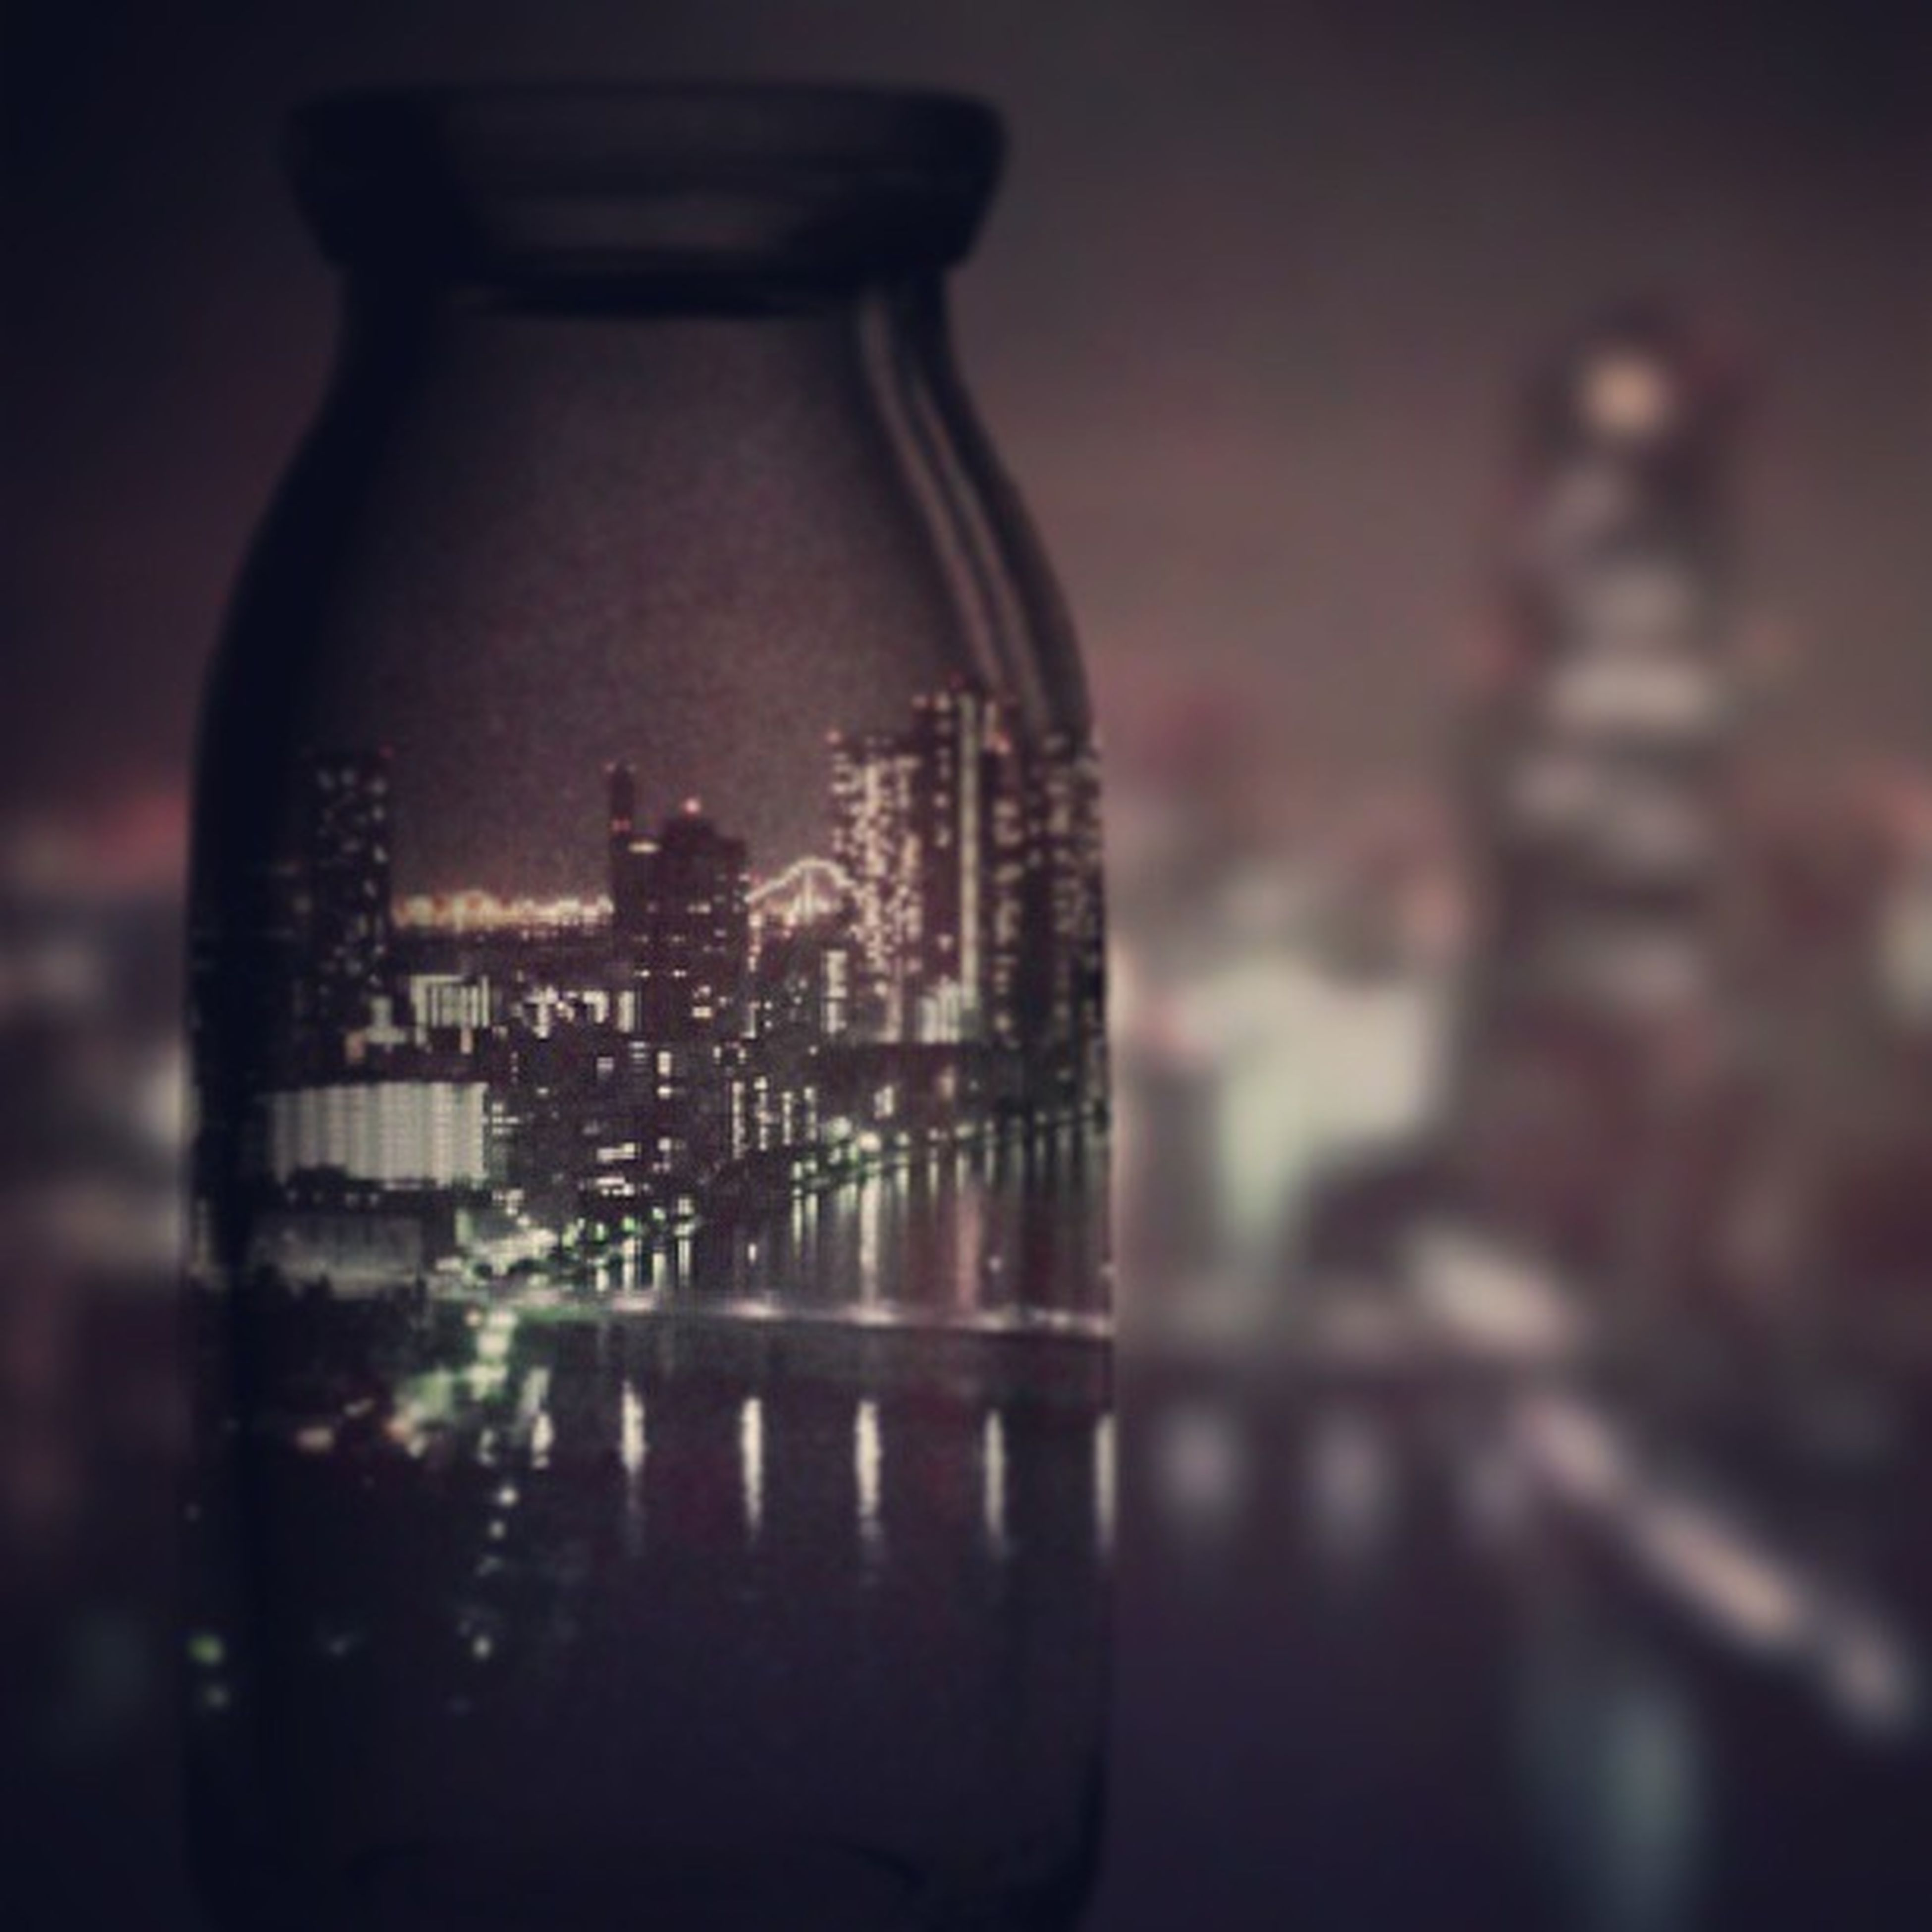 indoors, focus on foreground, illuminated, close-up, glass - material, architecture, still life, building exterior, built structure, city, no people, transparent, night, table, selective focus, modern, reflection, cityscape, metal, lighting equipment